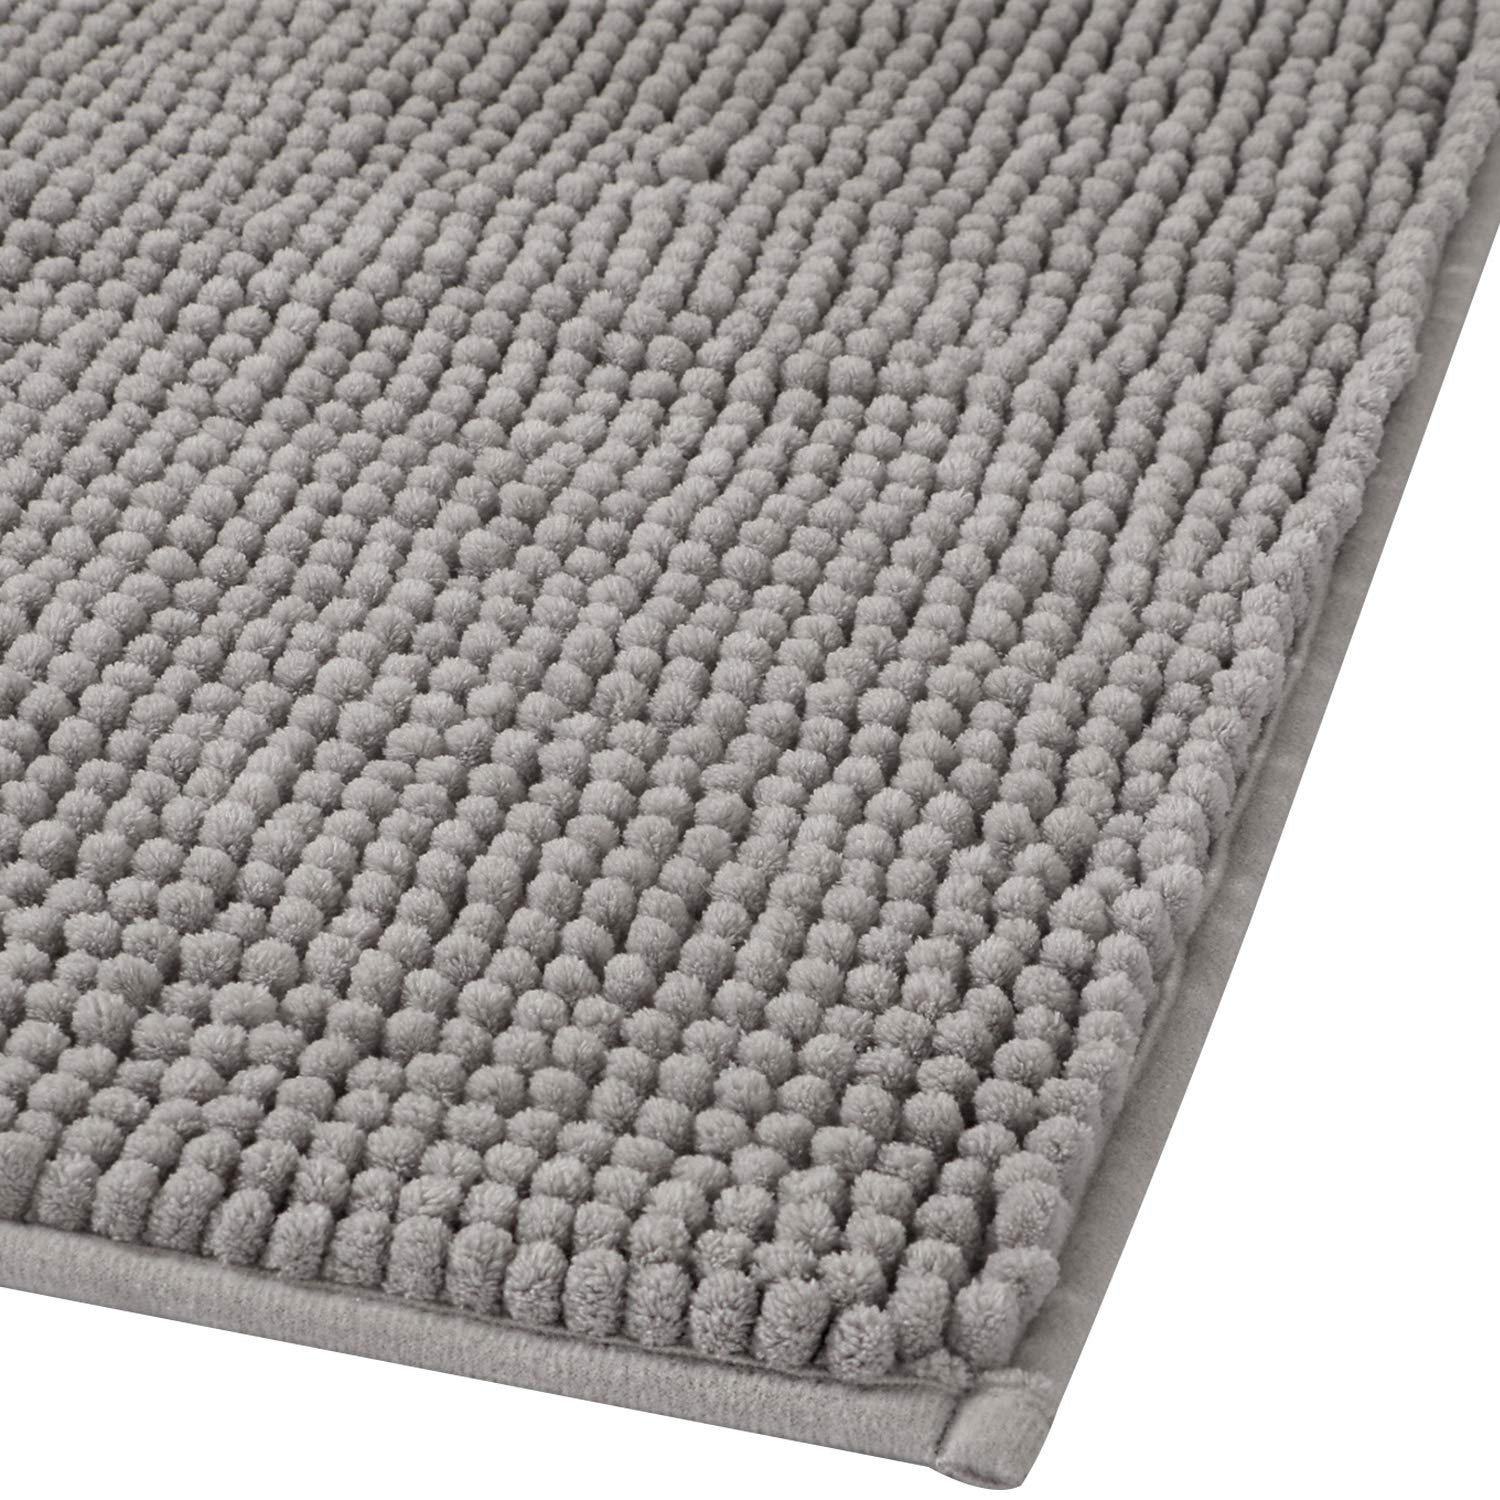 Lifewit 32''x20'' Bath Mat Non Slip Microfiber Shaggy Chenille Bath Rugs Bathroom Shower Mats Rug Gray